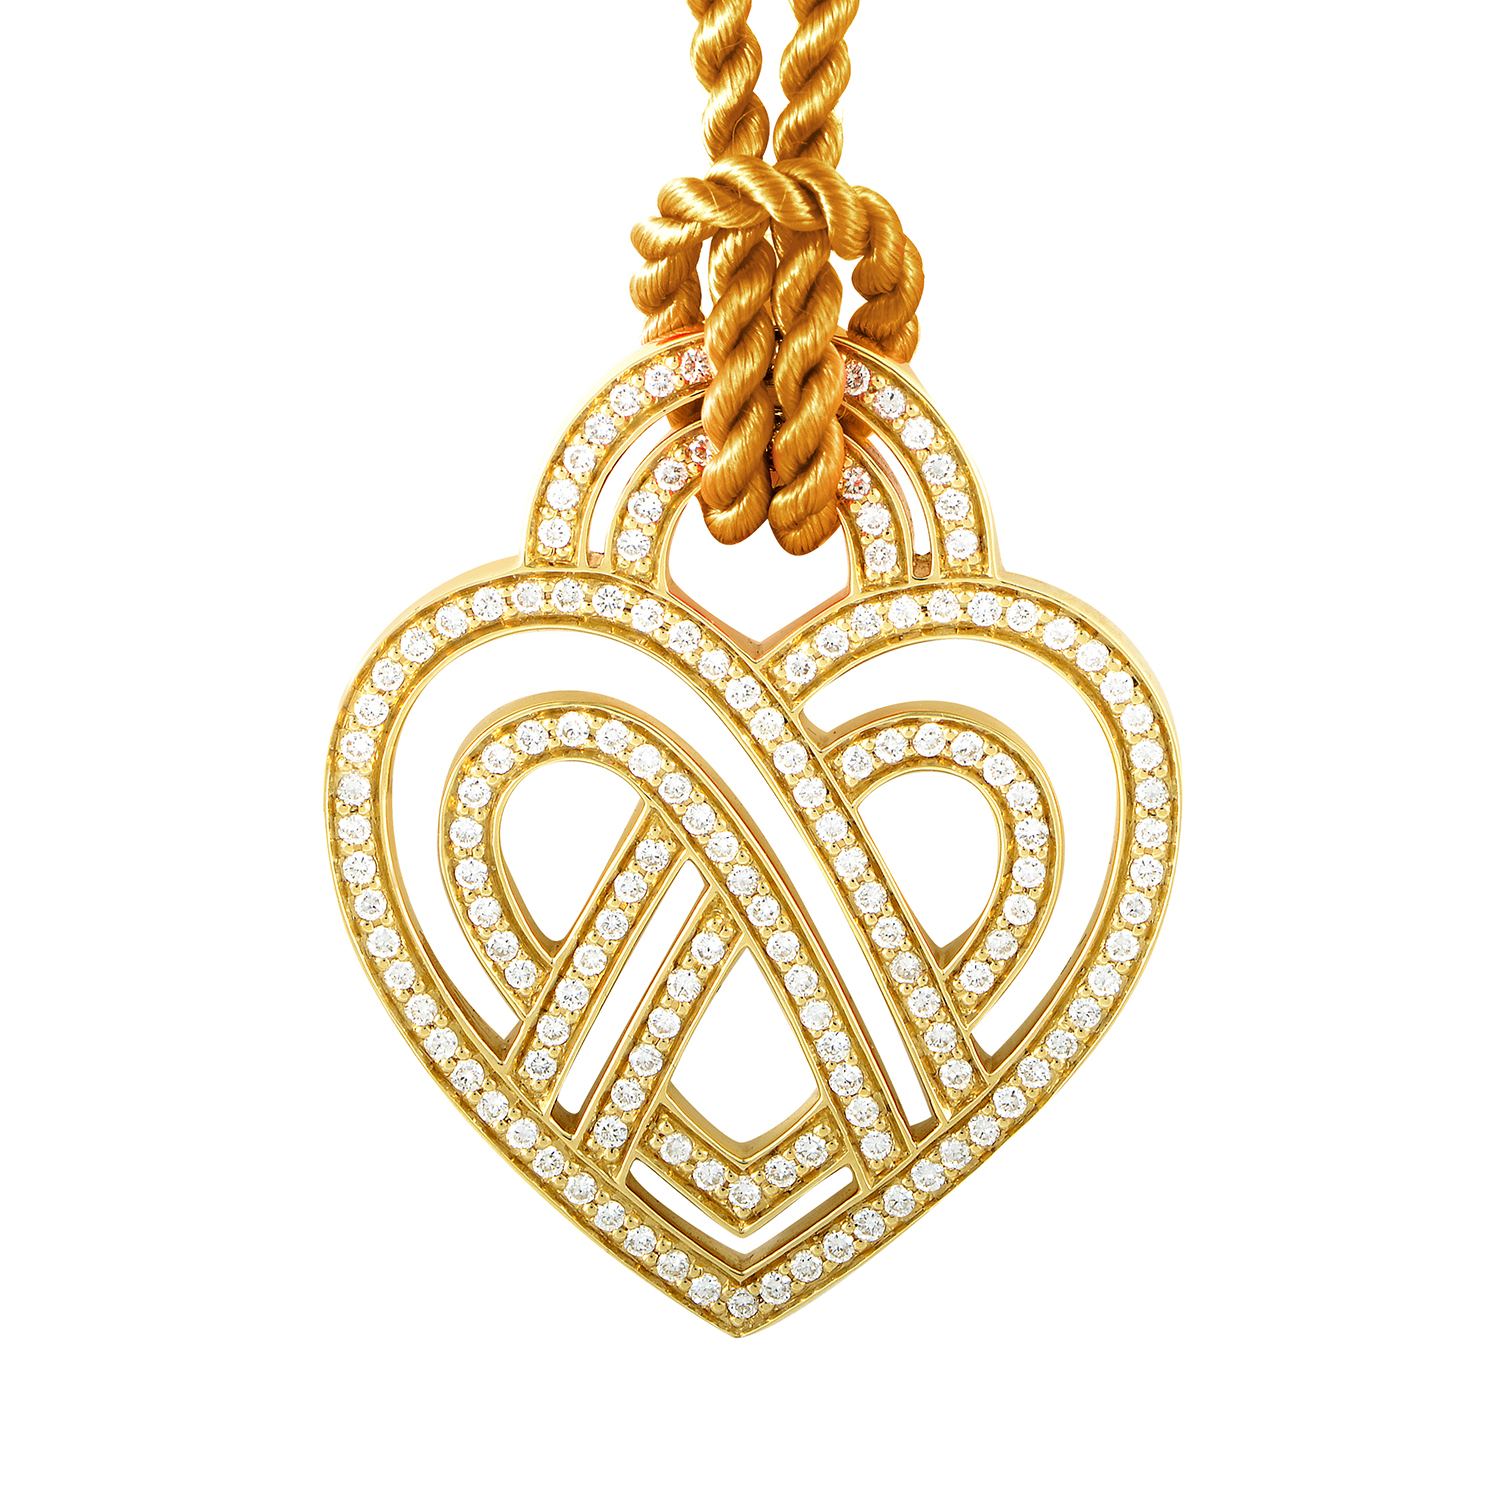 18K Yellow Gold Diamond Heart Pendant & Cord Necklace PPC8654GLD